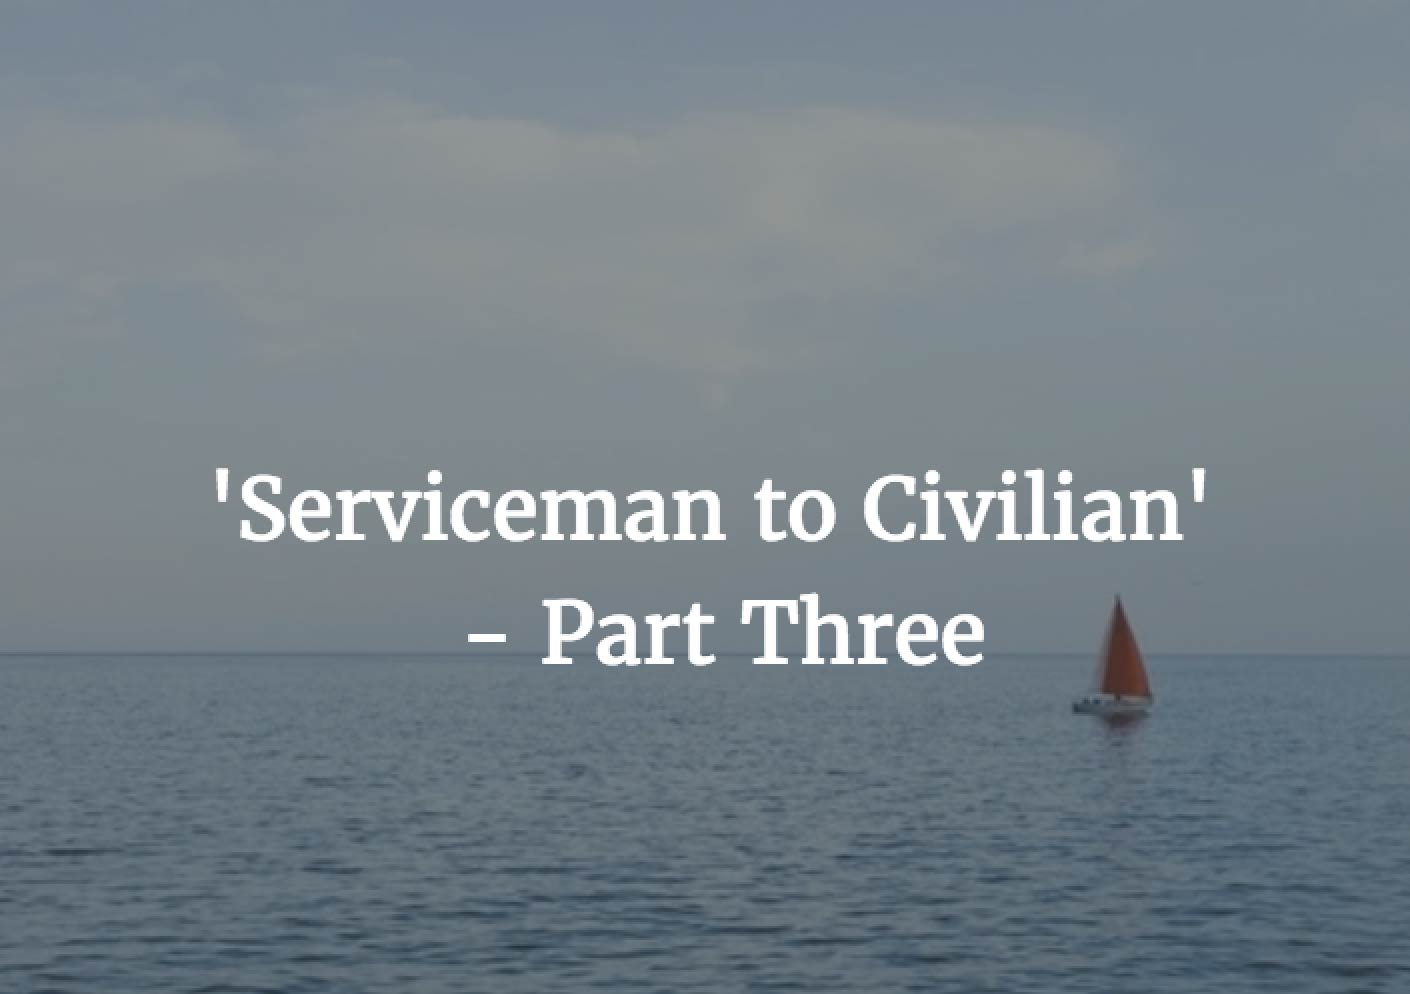 Image for Serviceman to Civilian - Part 3: First Port of Call